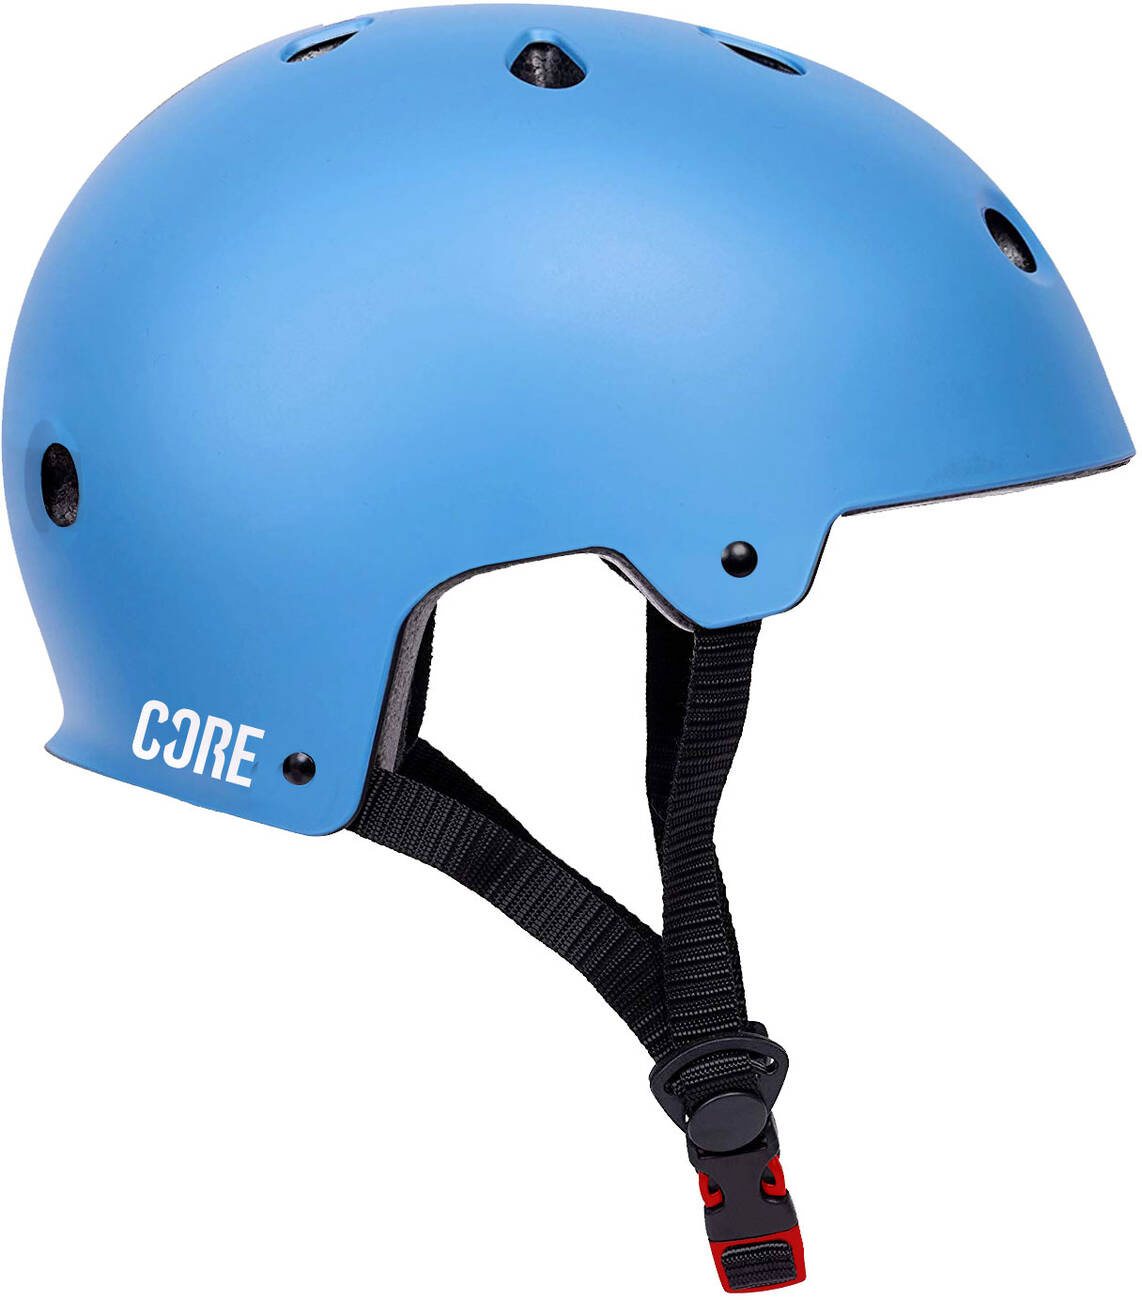 HELMET CORE BASIC - Blue